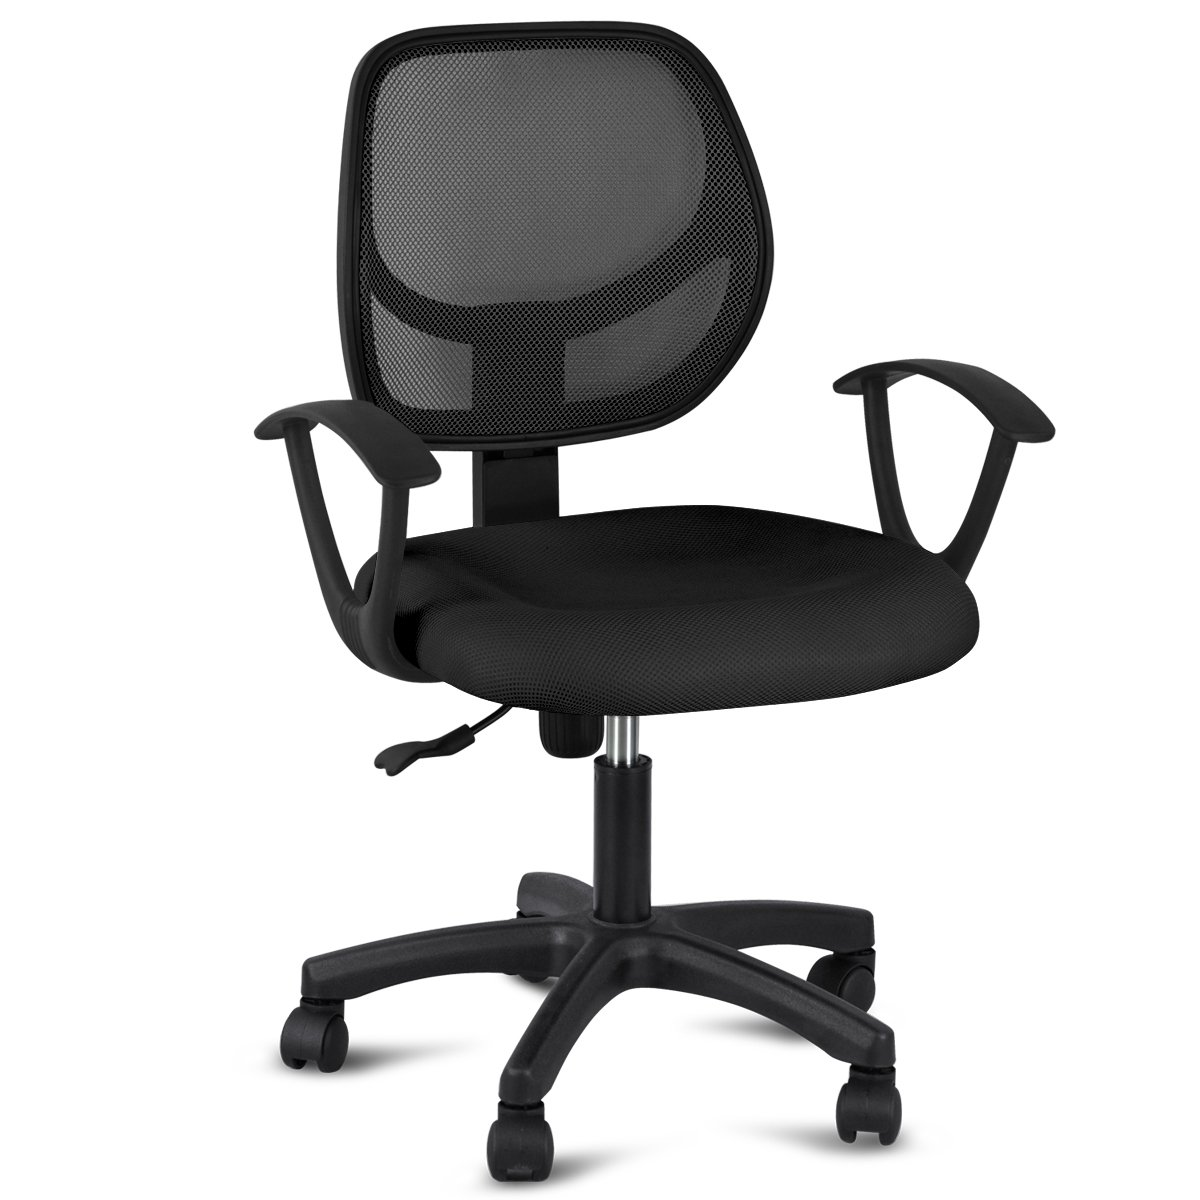 Best office chair 2016 - Gotobuy Adjustable Computer Desk Chair With Arms Black